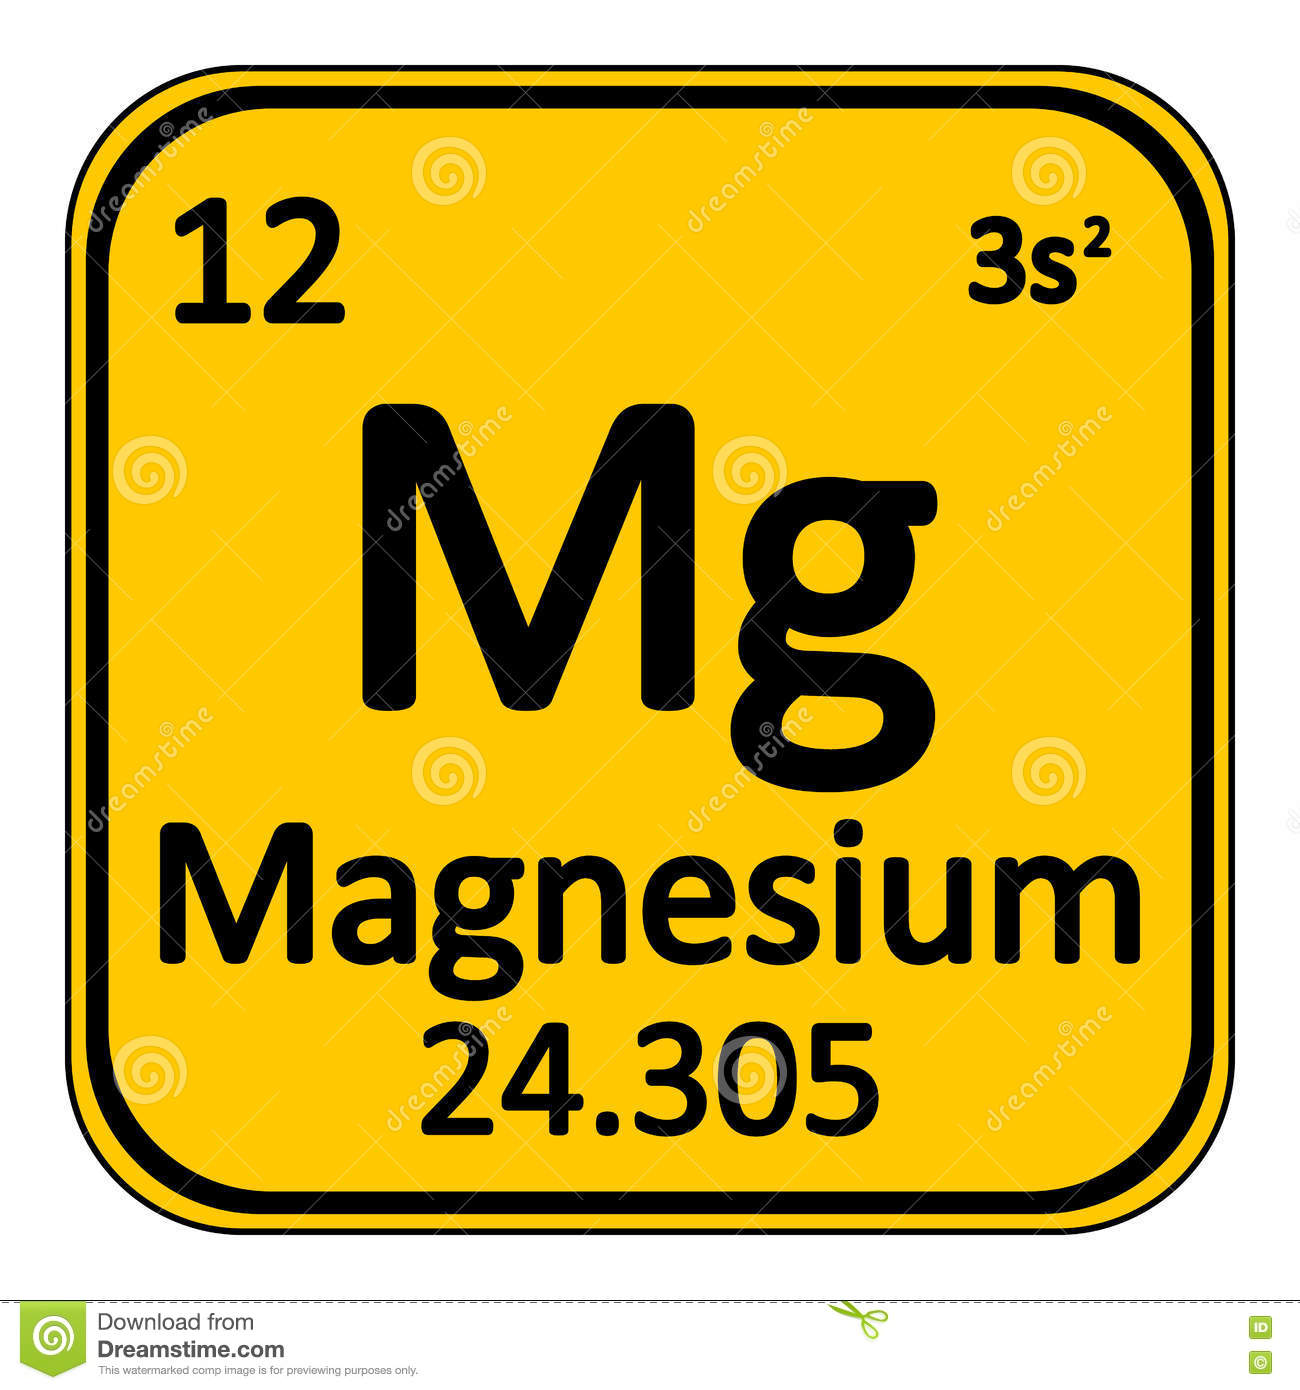 Periodic table element magnesium icon stock illustration image periodic table element magnesium icon gamestrikefo Gallery